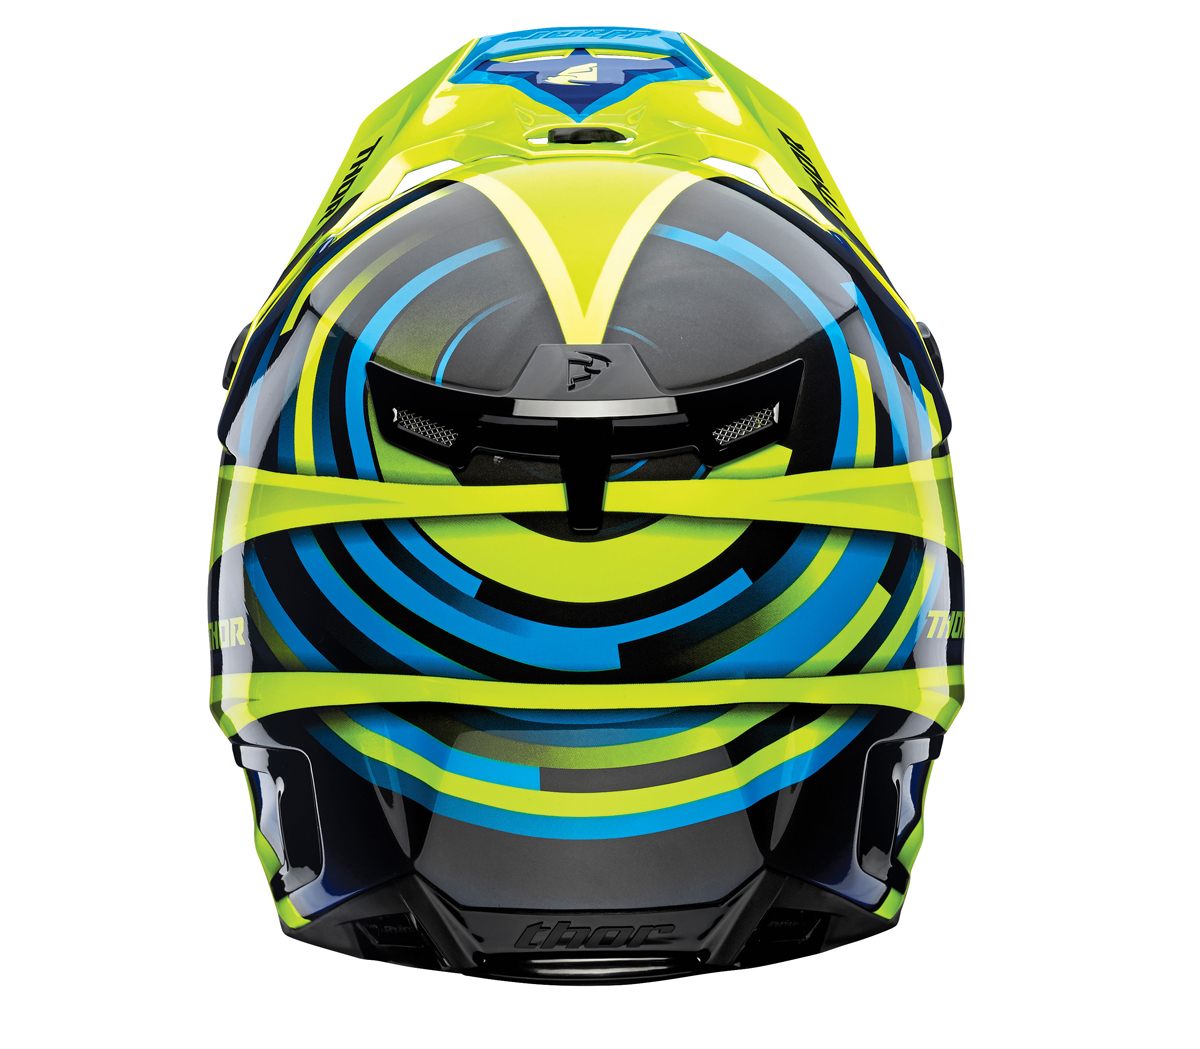 THOR MX Motocross 2017 VERGE Helmet (VORTECHS Flo Green/Navy) Choose ...